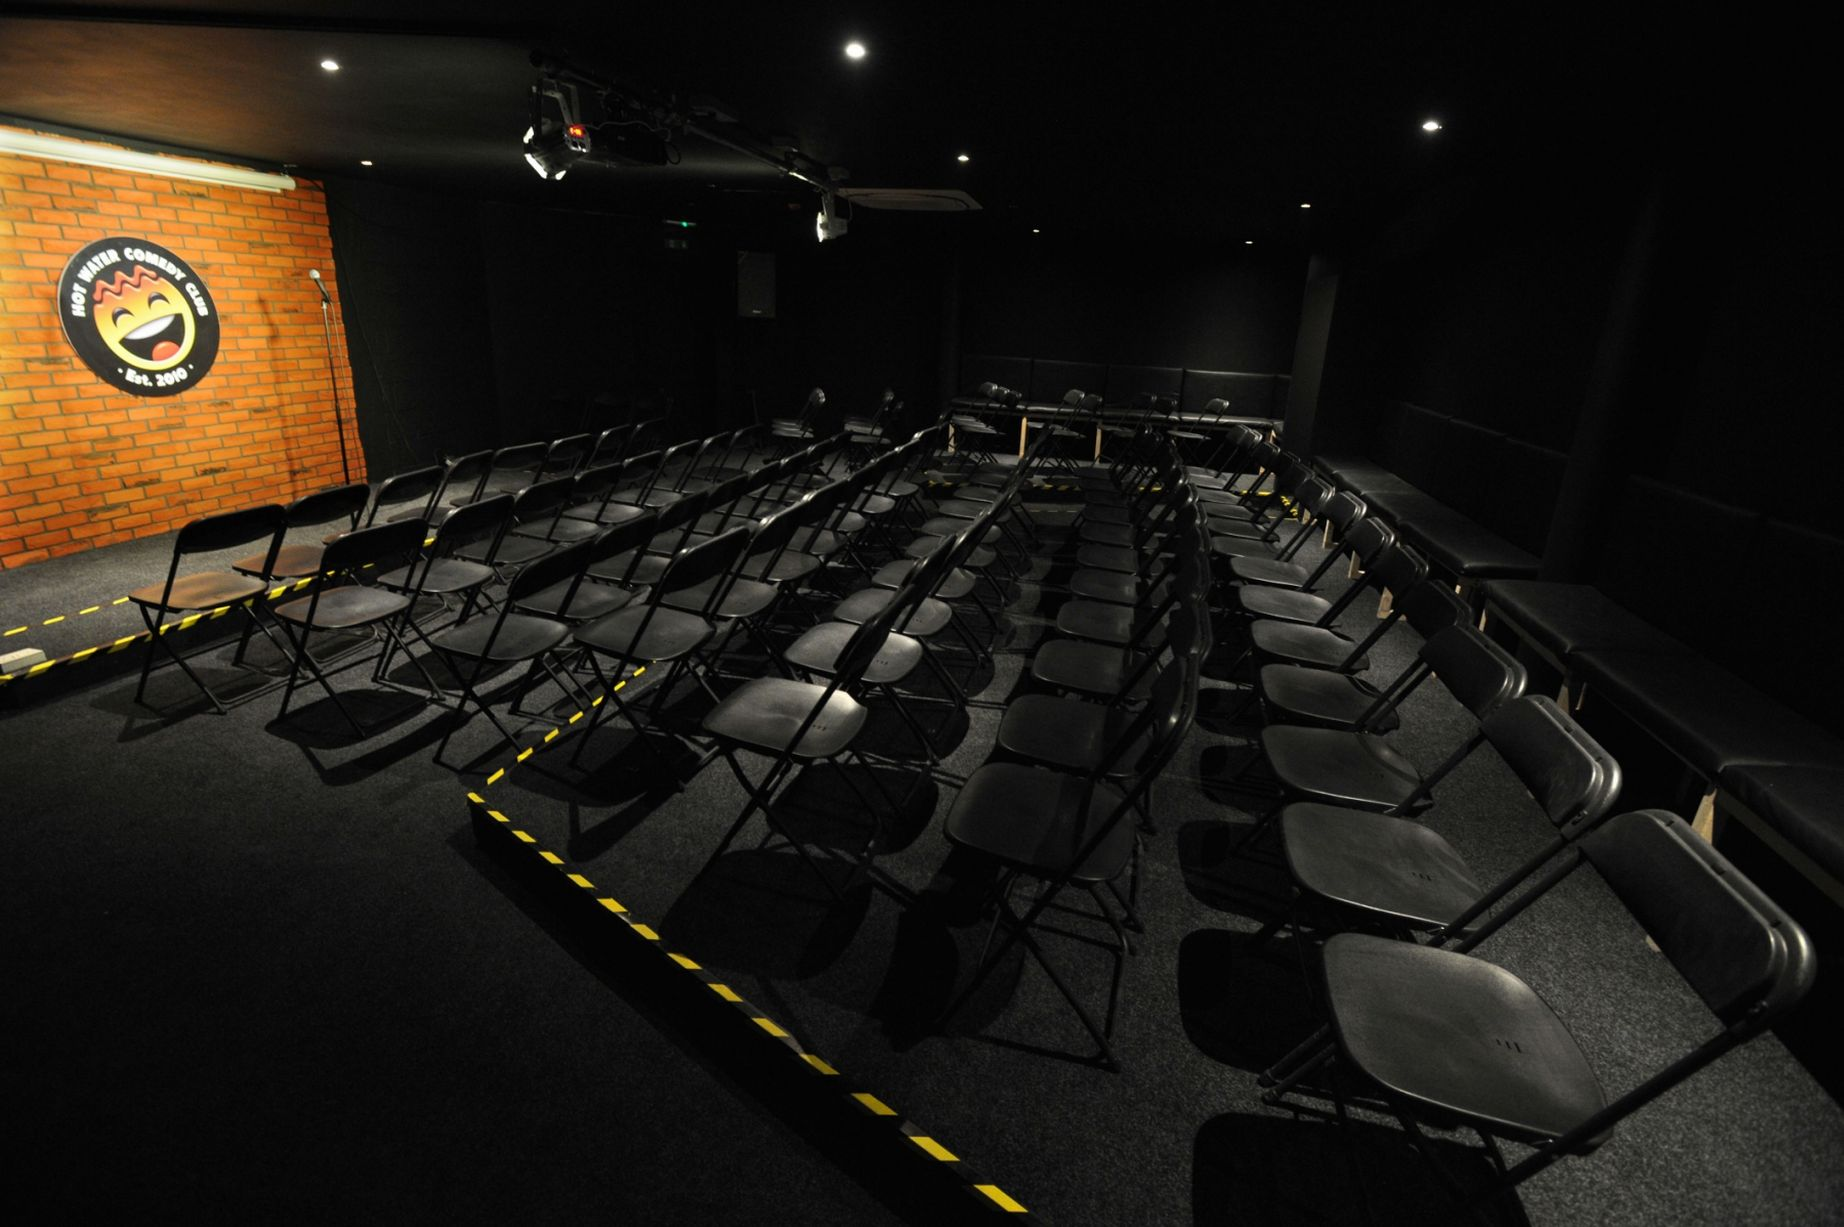 empty-venue-with-stage-and-black-seats-hot-water-comedy-club